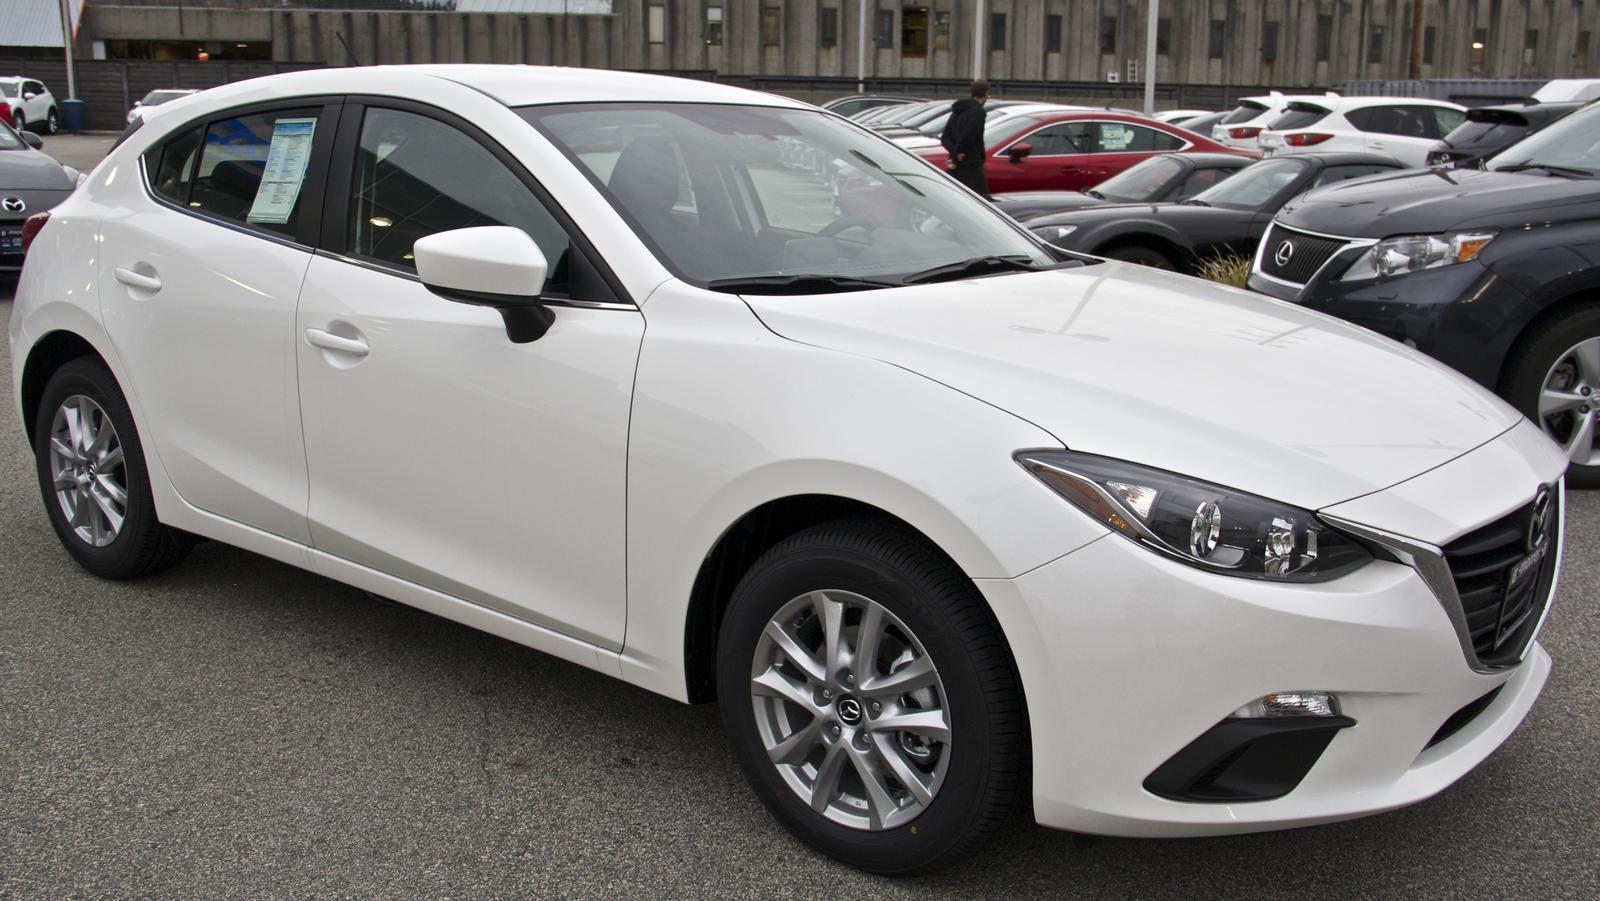 2015 mazda 3 hatchback itouring. Black Bedroom Furniture Sets. Home Design Ideas